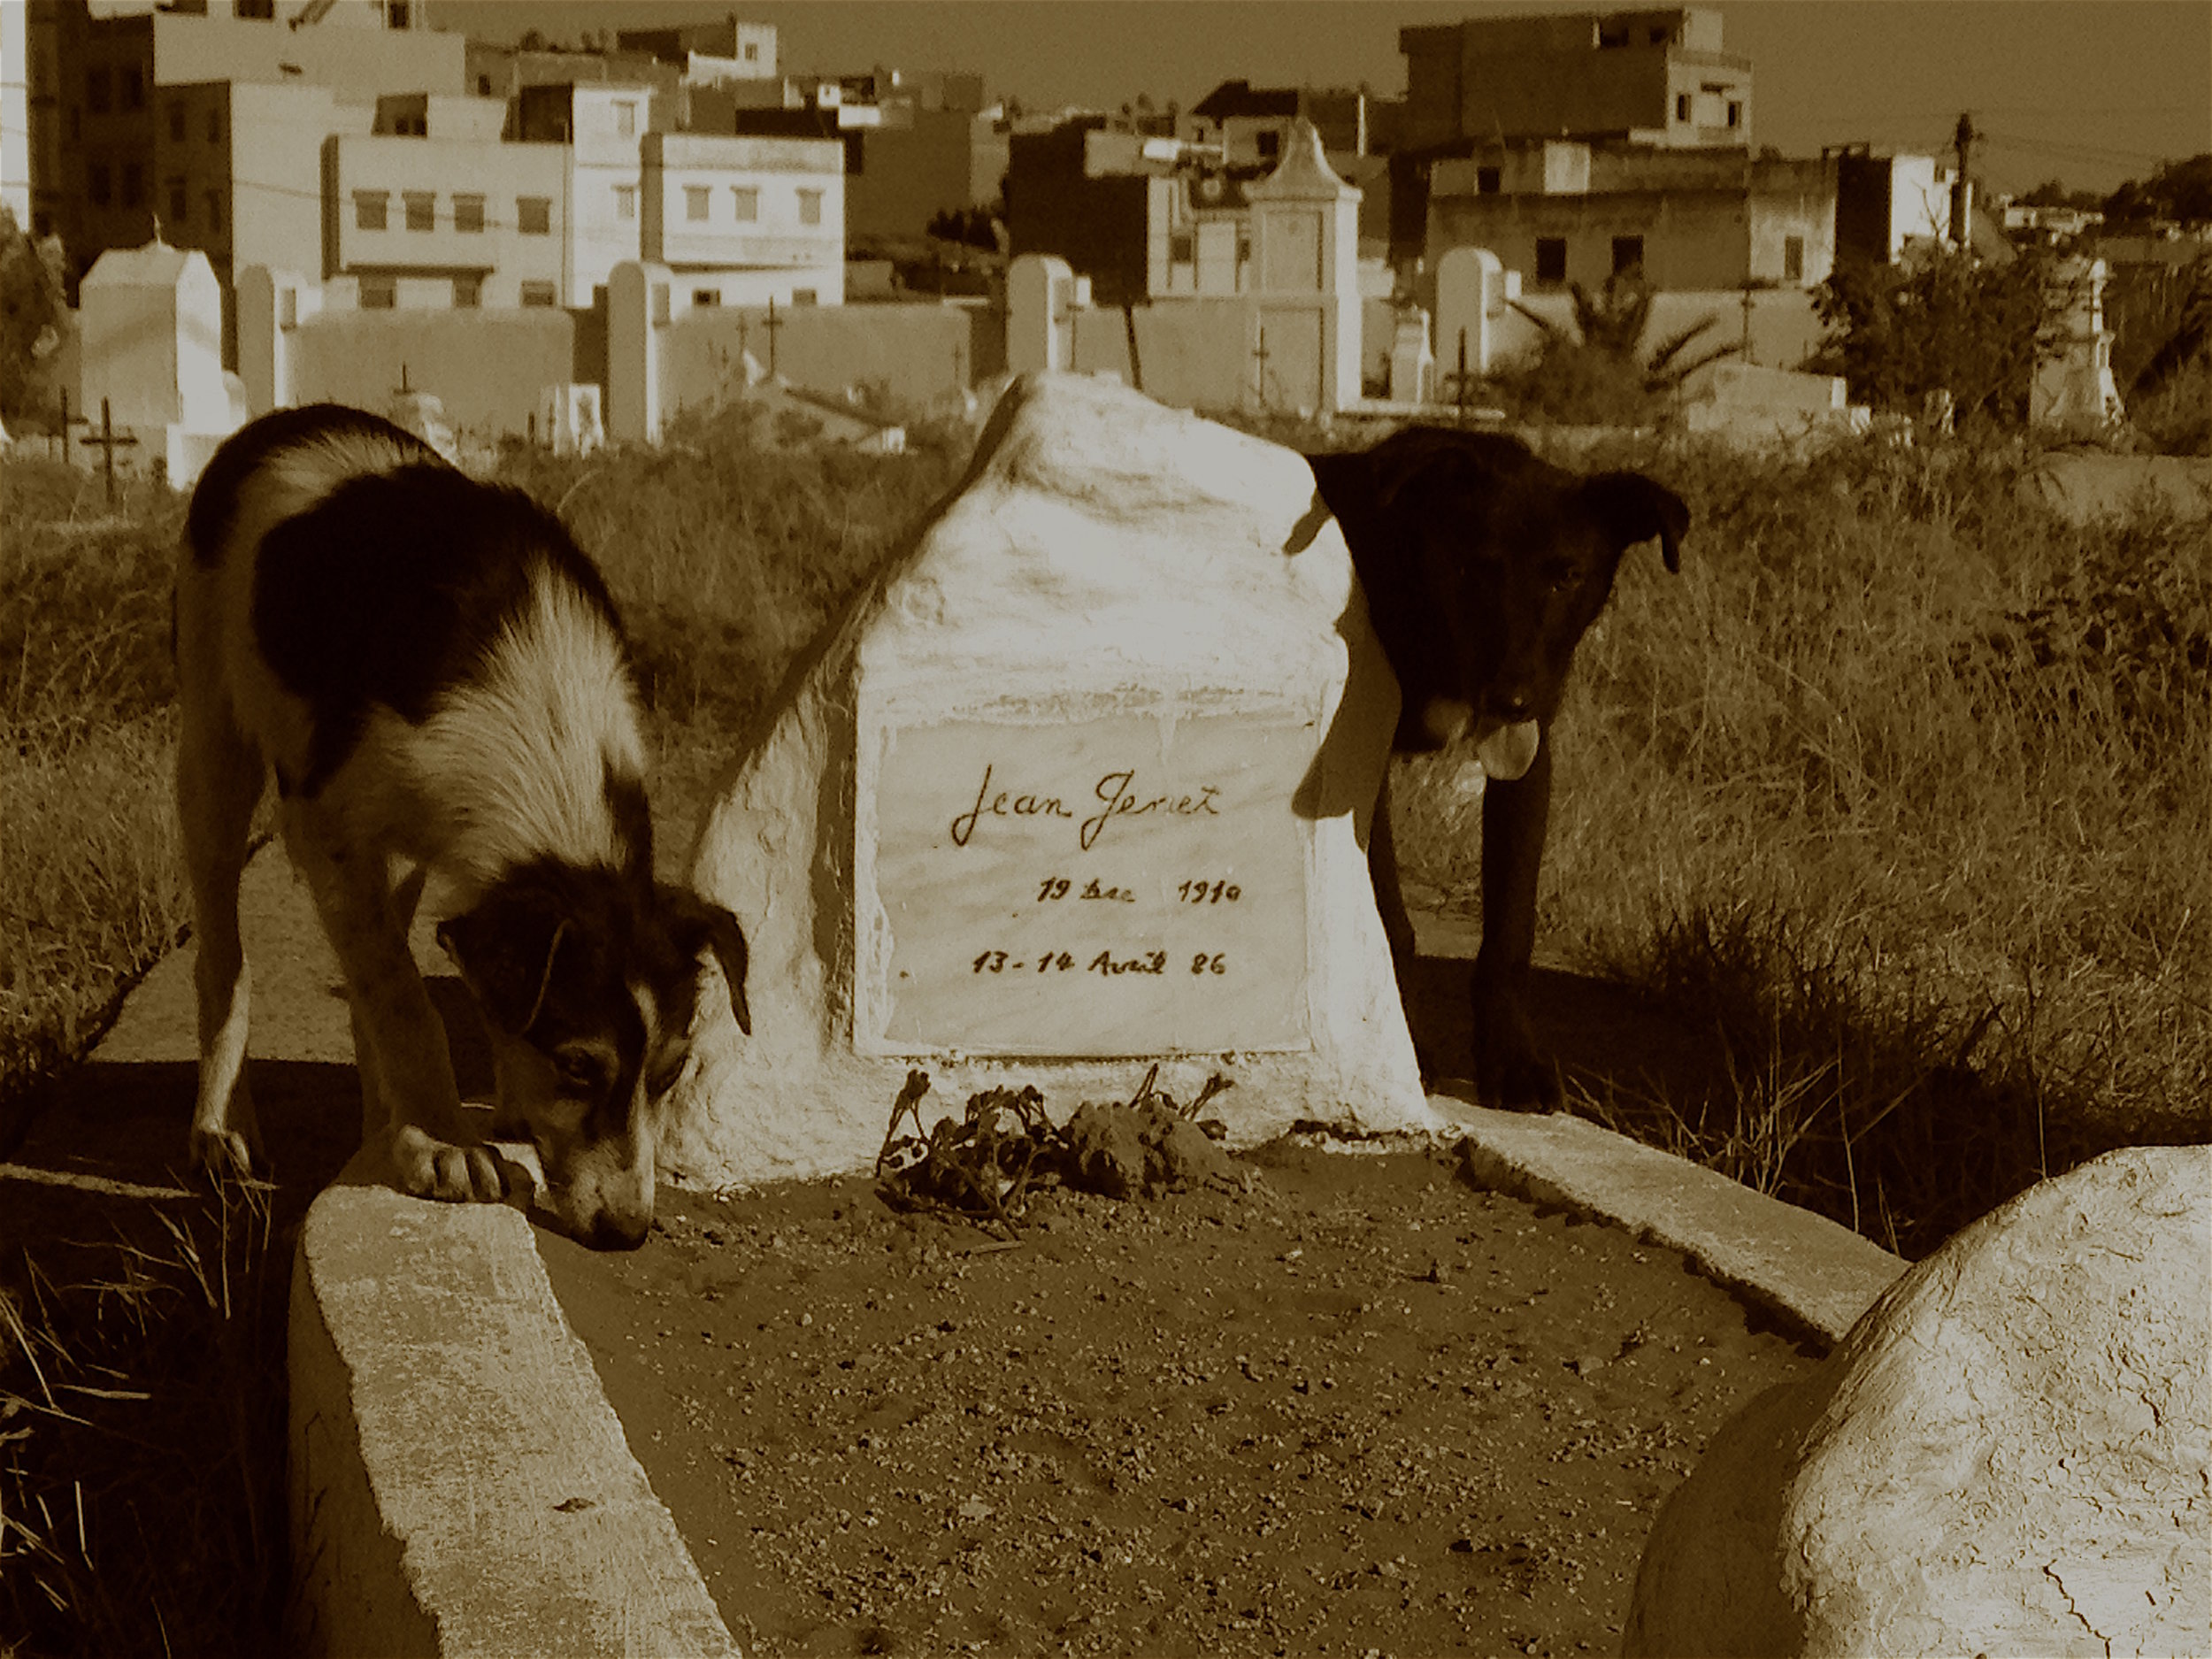 Jean Genet's grave in Larache, Morocco. (Photo by Kaite O'Reilly)